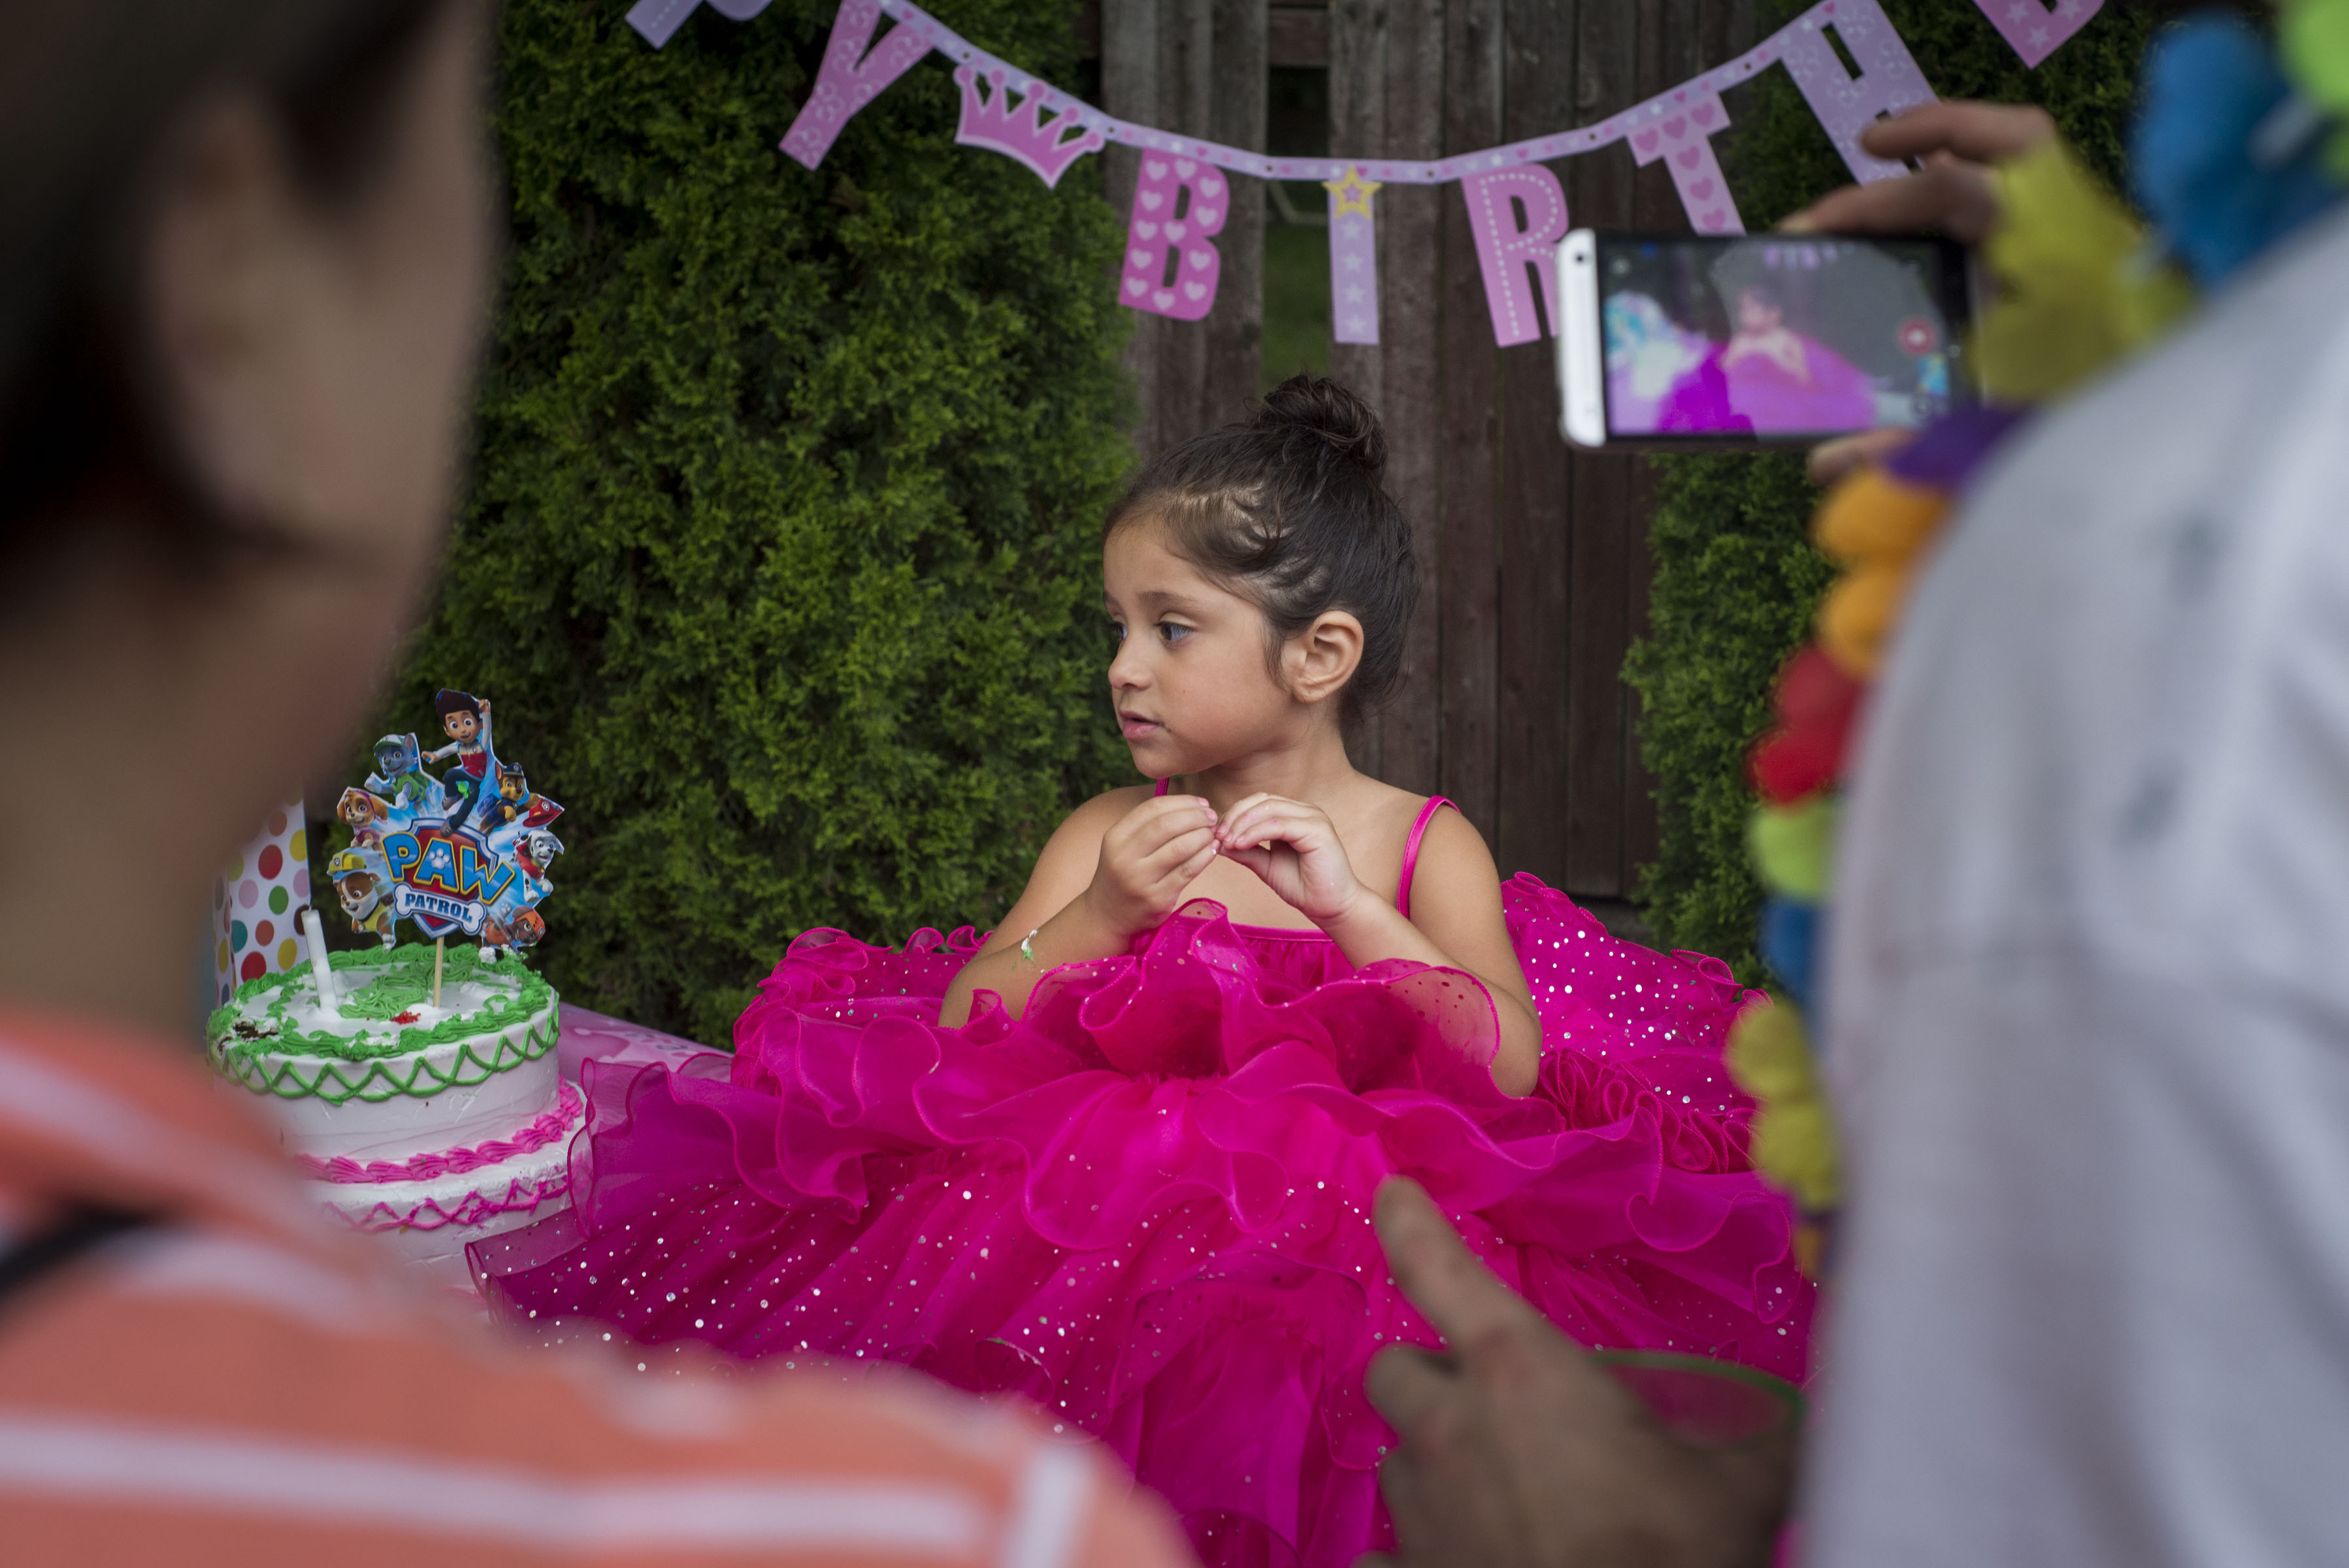 My niece, Rubi Sepulveda, 4, wears a large puffy dress and is posed like a doll for her birthday in Revere, Massachusetts. (Photo by Iaritza Menjivar/GroundTruth)